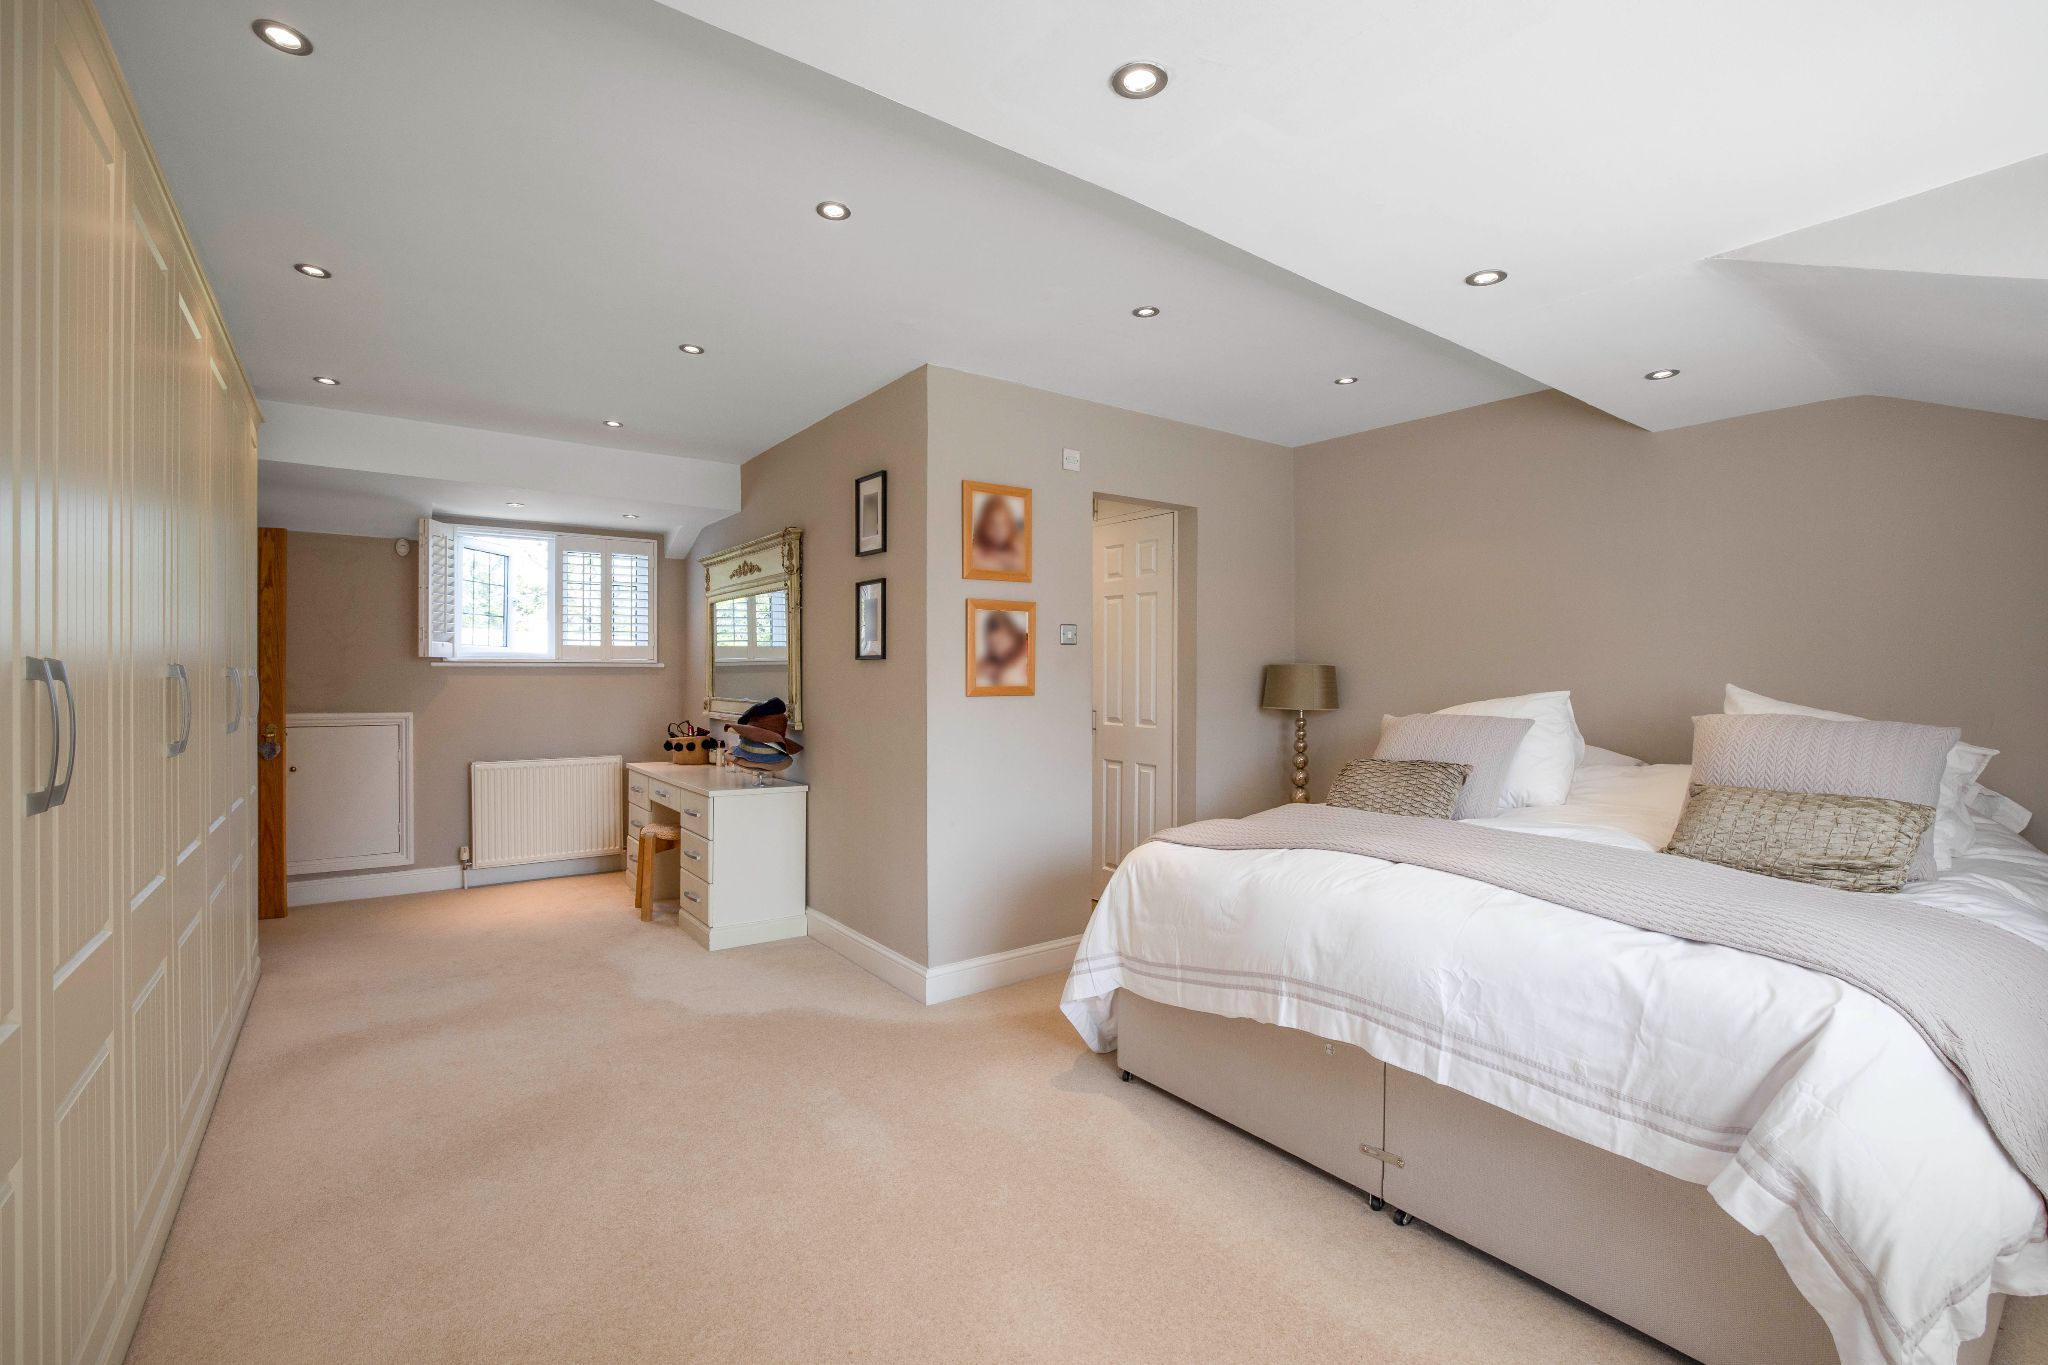 5 bedroom detached house Sale Agreed in Hertford - Photograph 19